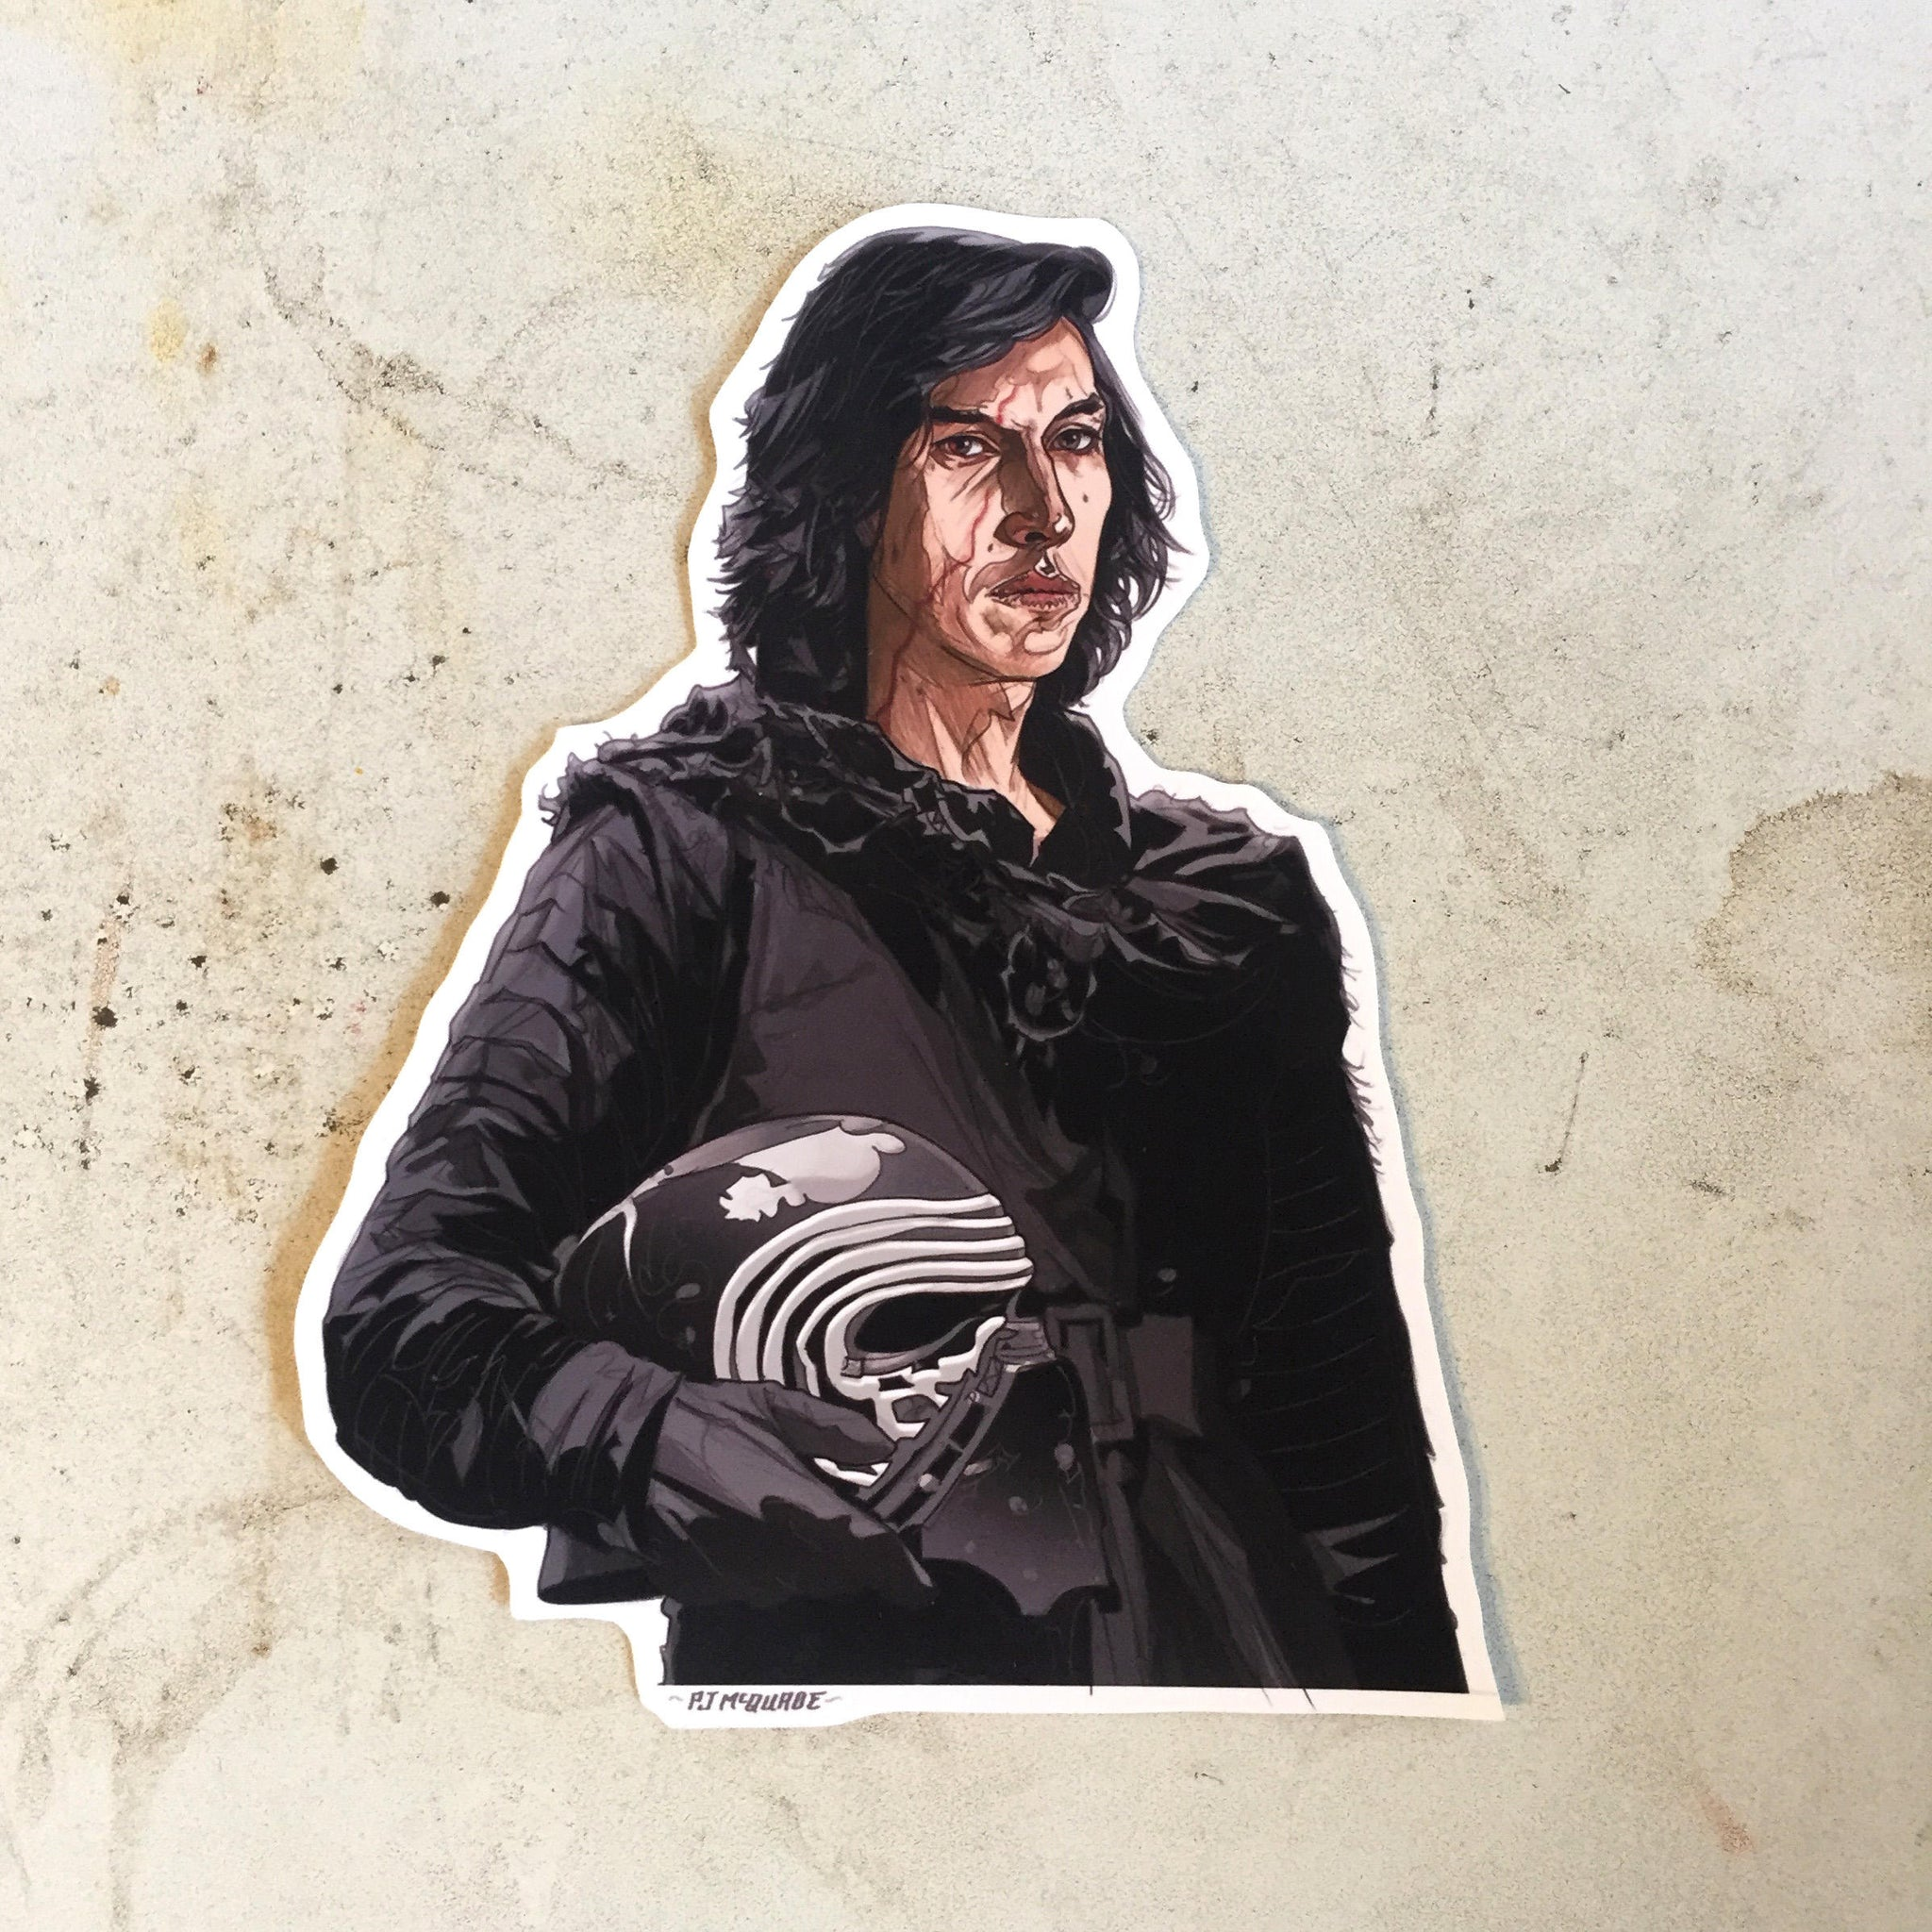 Kylo Ren STAR WARS Waterproof STICKER!